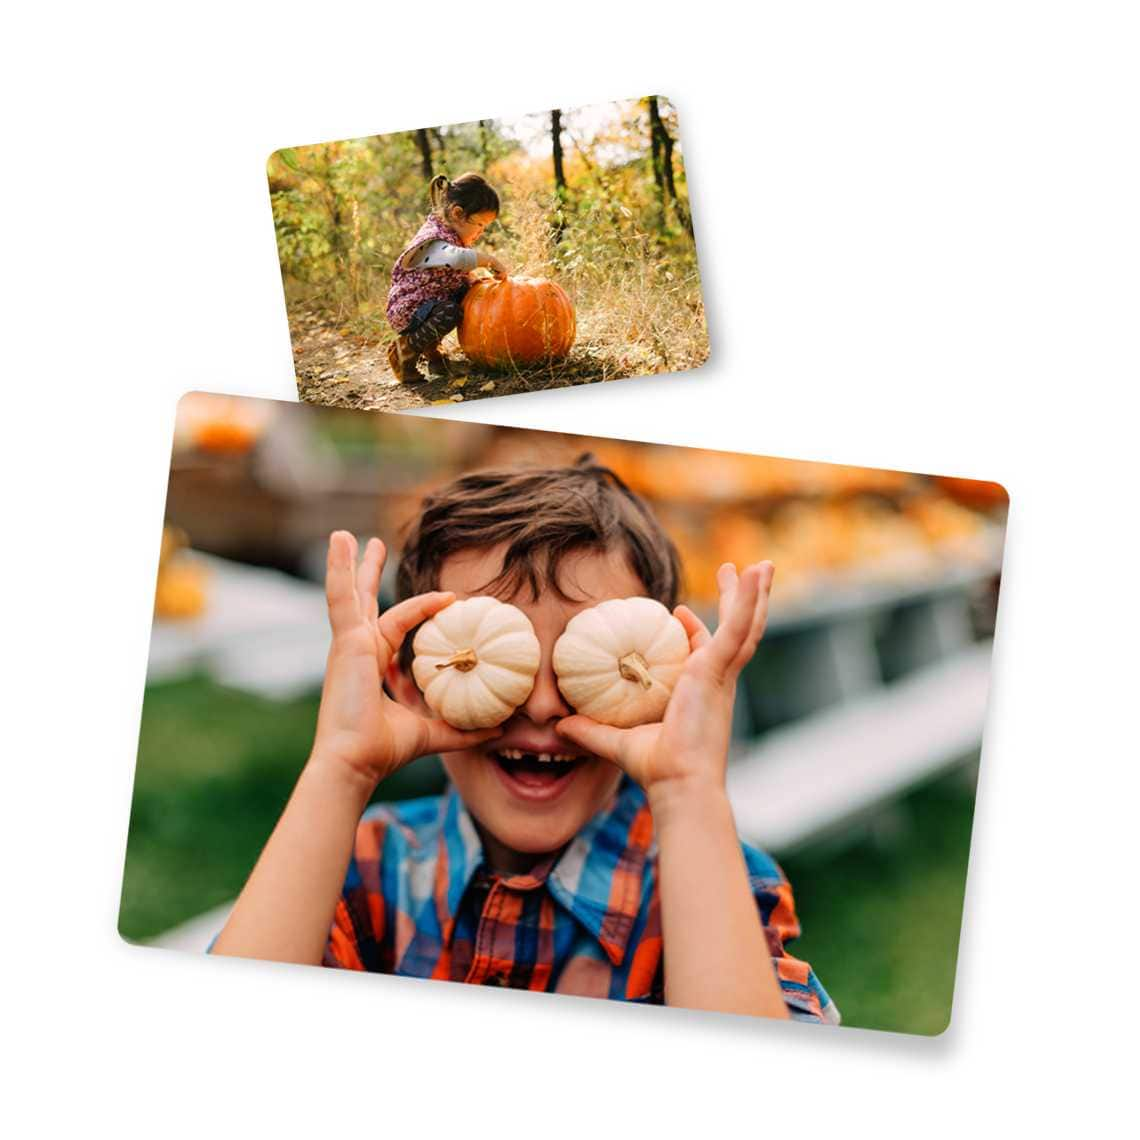 Free 4x6 Photo Magnet from Snapfish Just Shipping $2.99